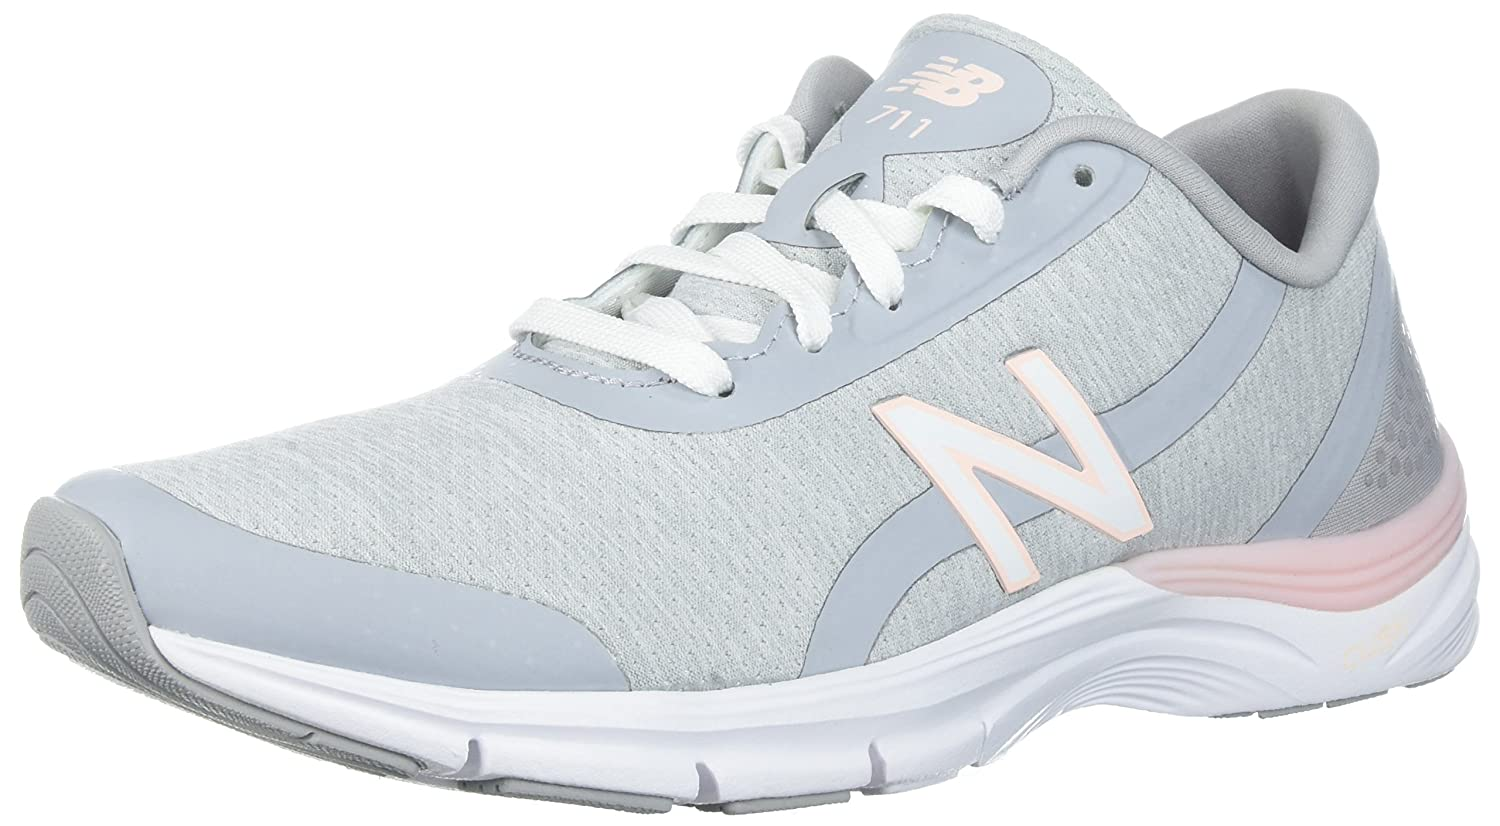 New Balance Women's 711v3 Cross Trainer B06XRVJ8KC 11 B(M) US|White